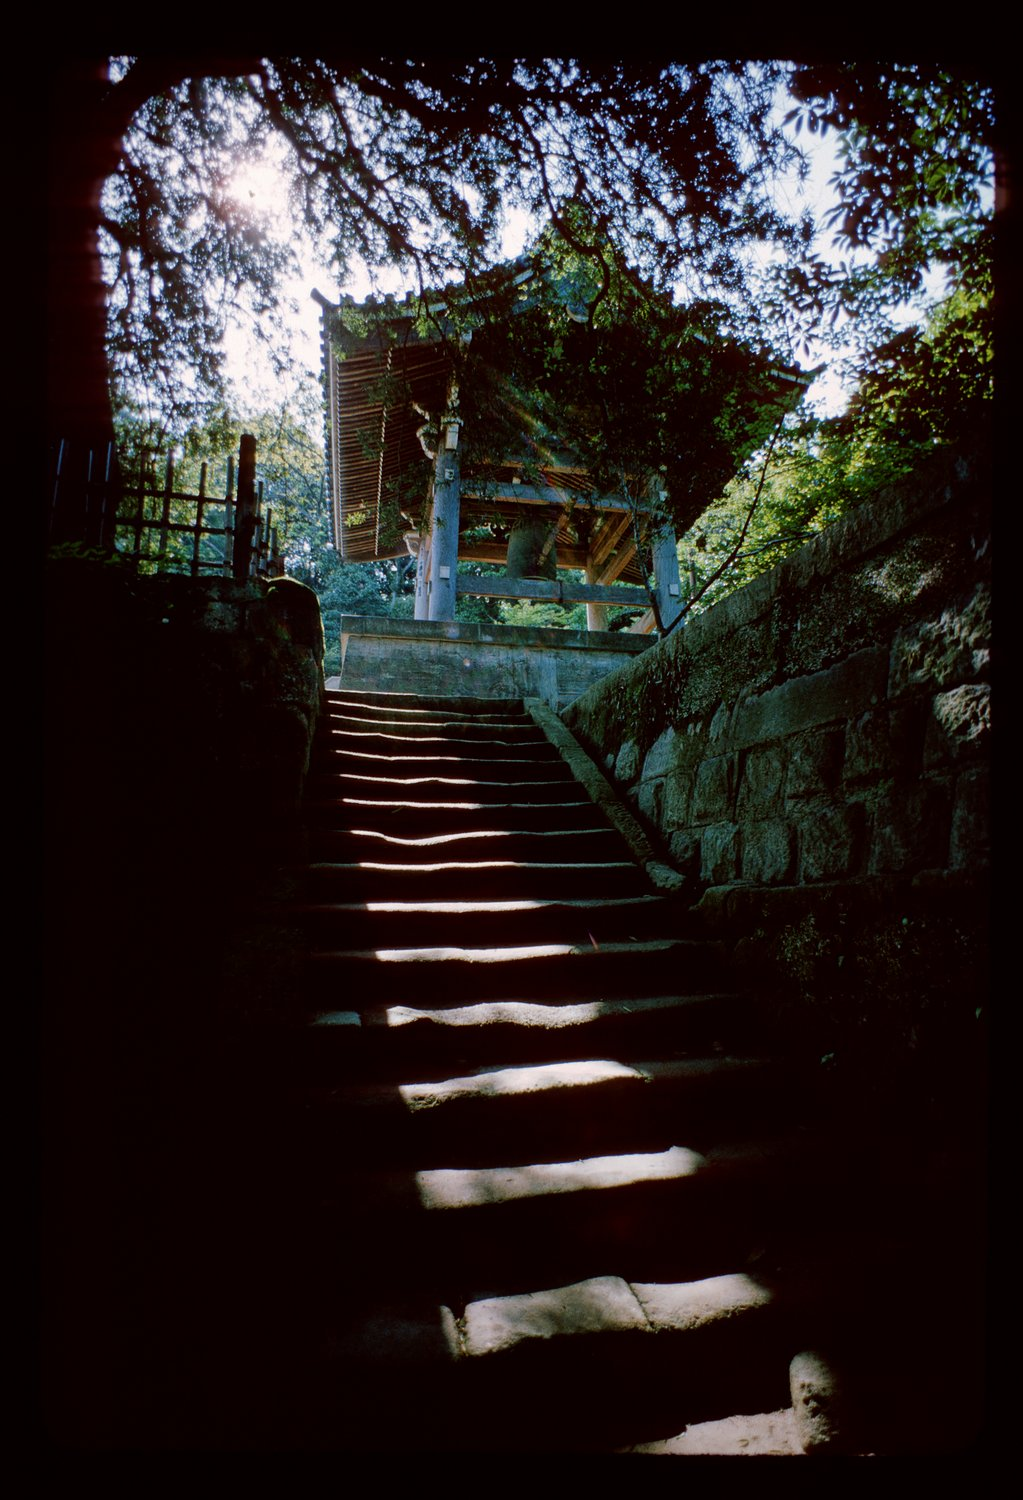 stairs leading up to bell tower - Kamakura, Japan - 1965 - Kodachrome - Tony Karp, design, art, photography, techno-impressionist, techno-impressionism, aerial photography , drone , drones , dji , mavic pro , video , 3D printing - Books -